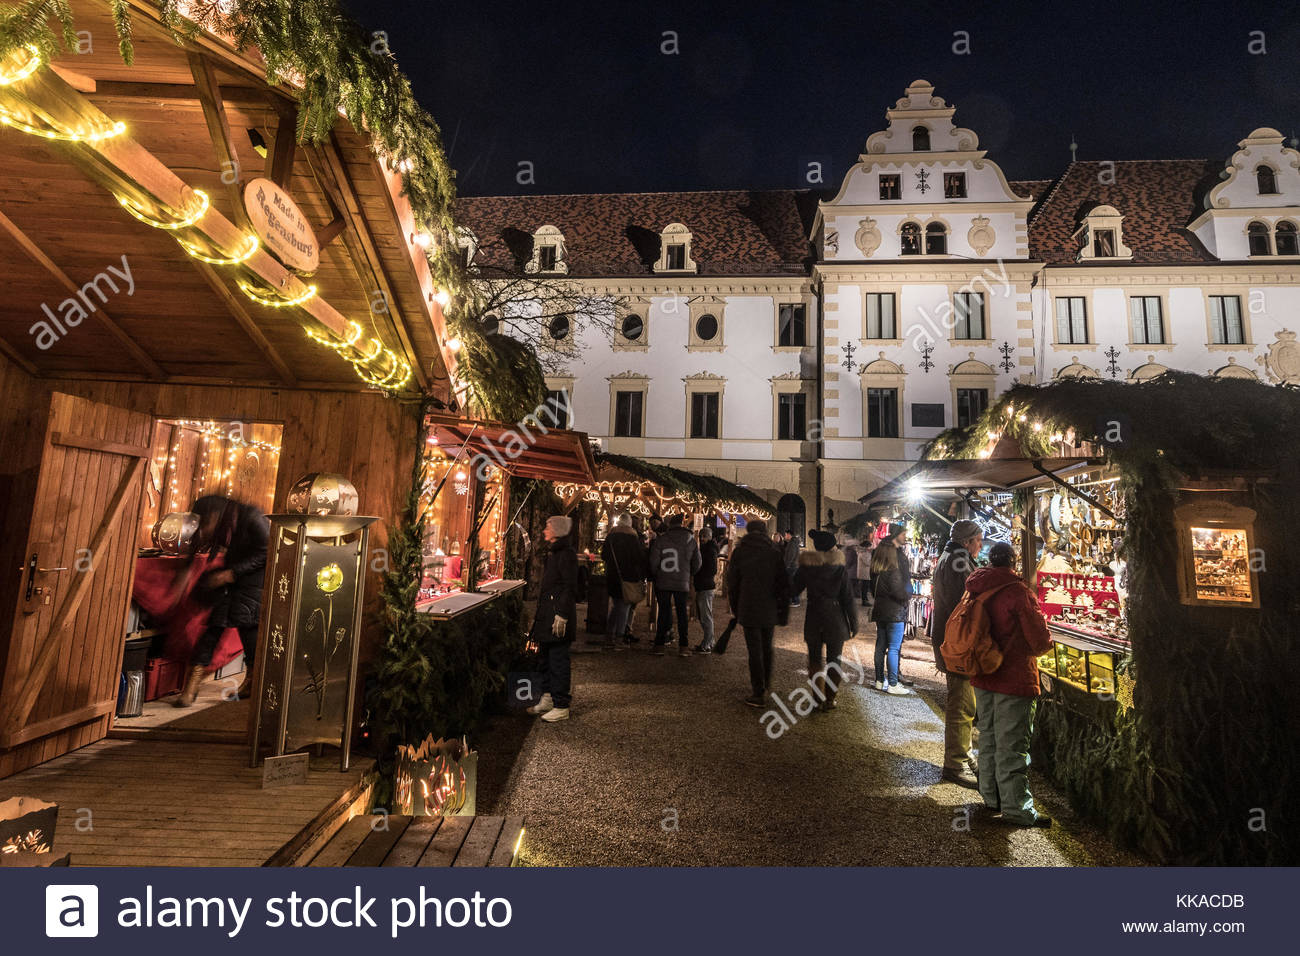 St. Kassian Franconia and the German Danube, St Emmeram Stock Photos & St Emmeram Stock Images - Alamy